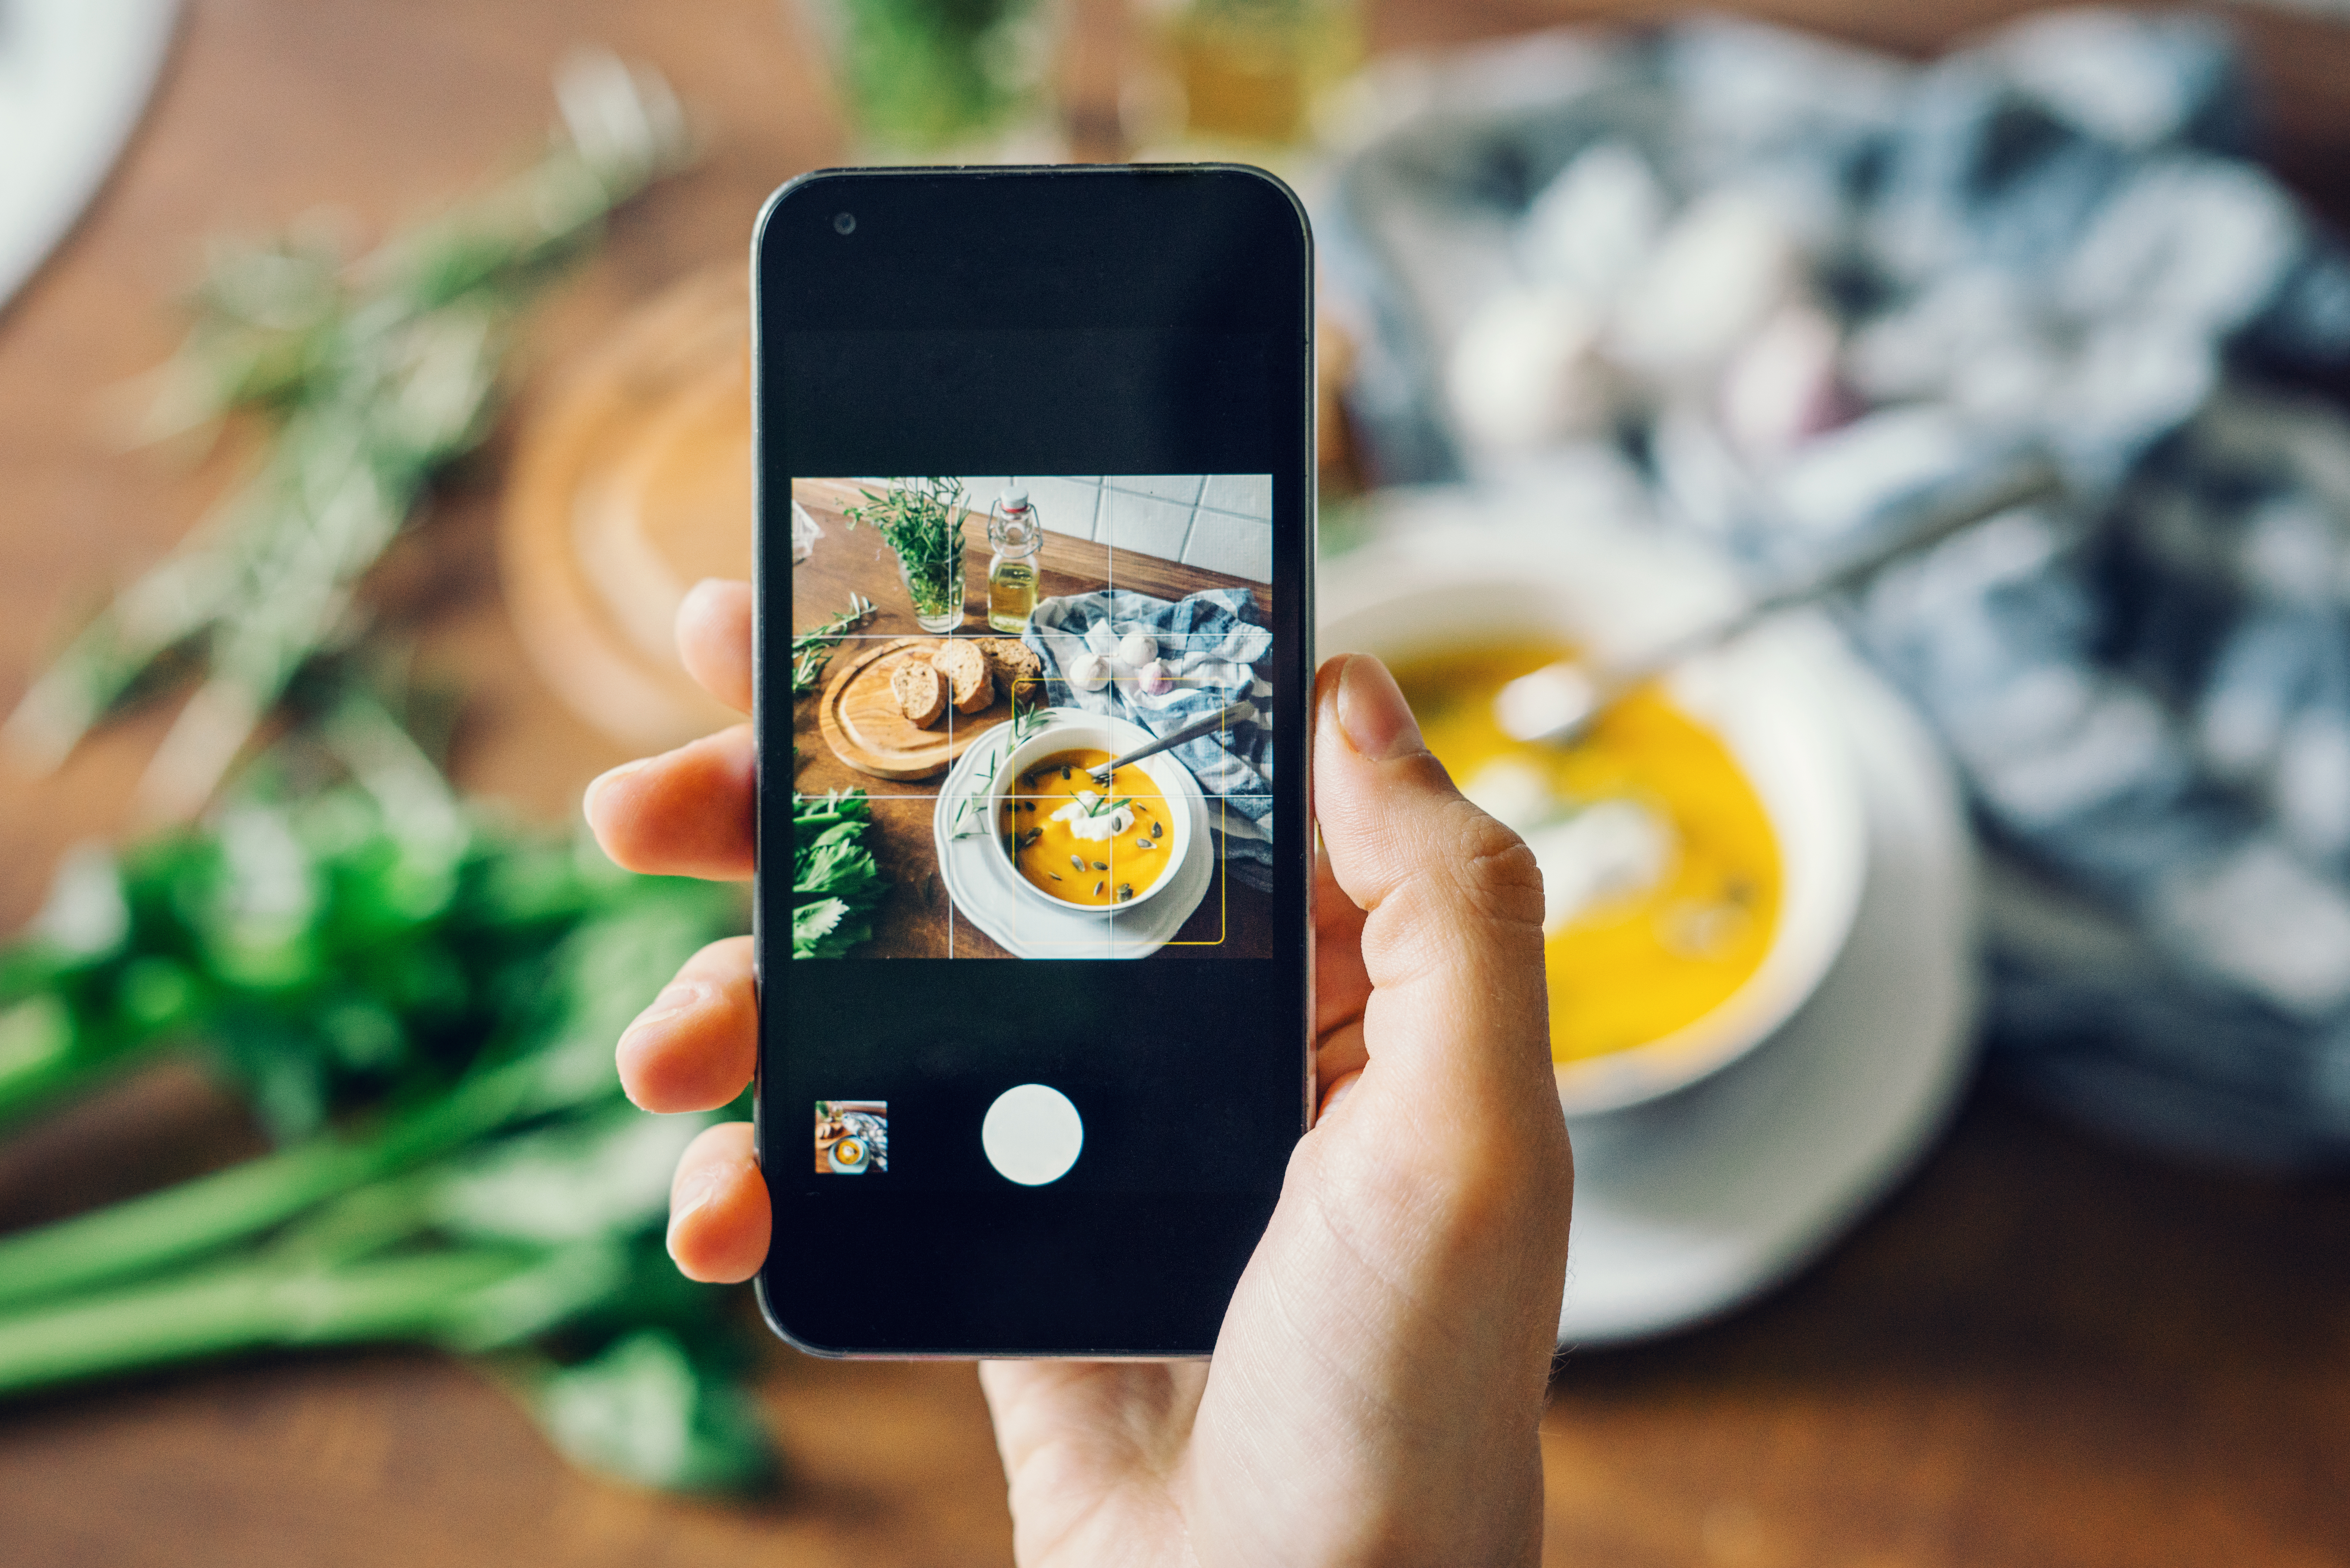 Woman-taking-photo-of-pumpkin-soup-with-smartphone-624718052_7360x4912